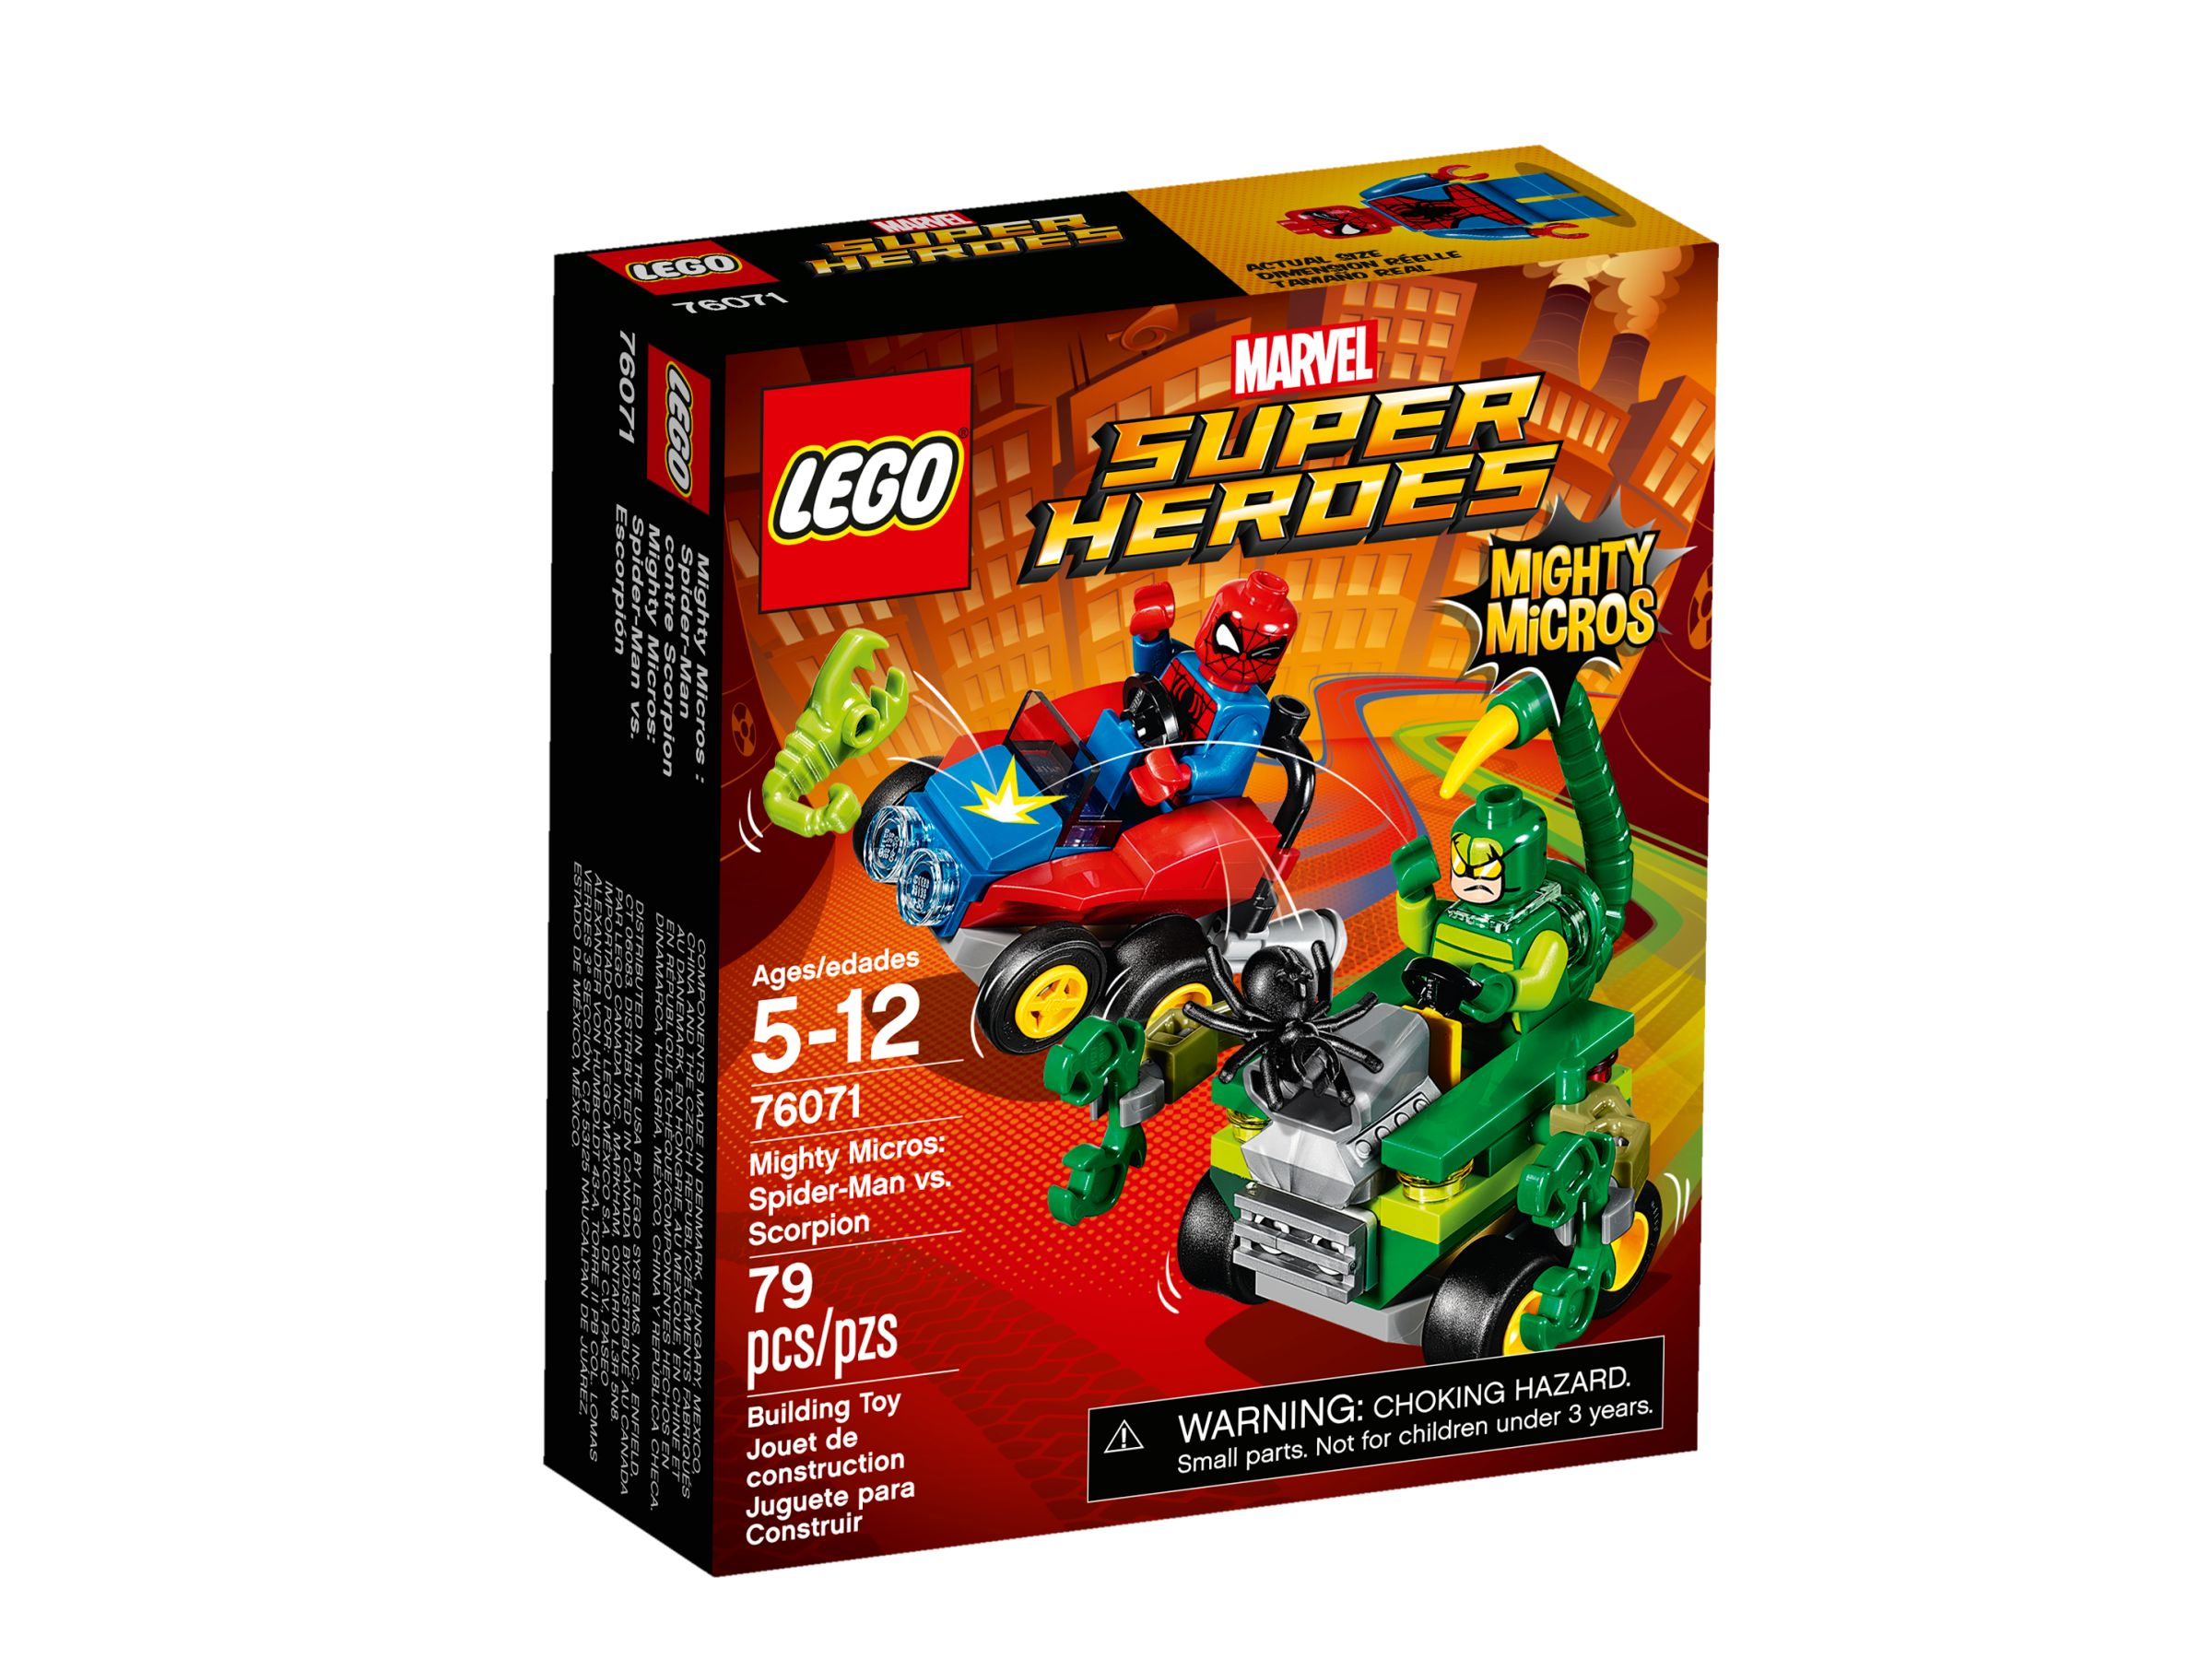 LEGO Super Heroes 76071 Mighty Micros: Spider-Man vs. Scorpion LEGO_76071_alt1.jpg